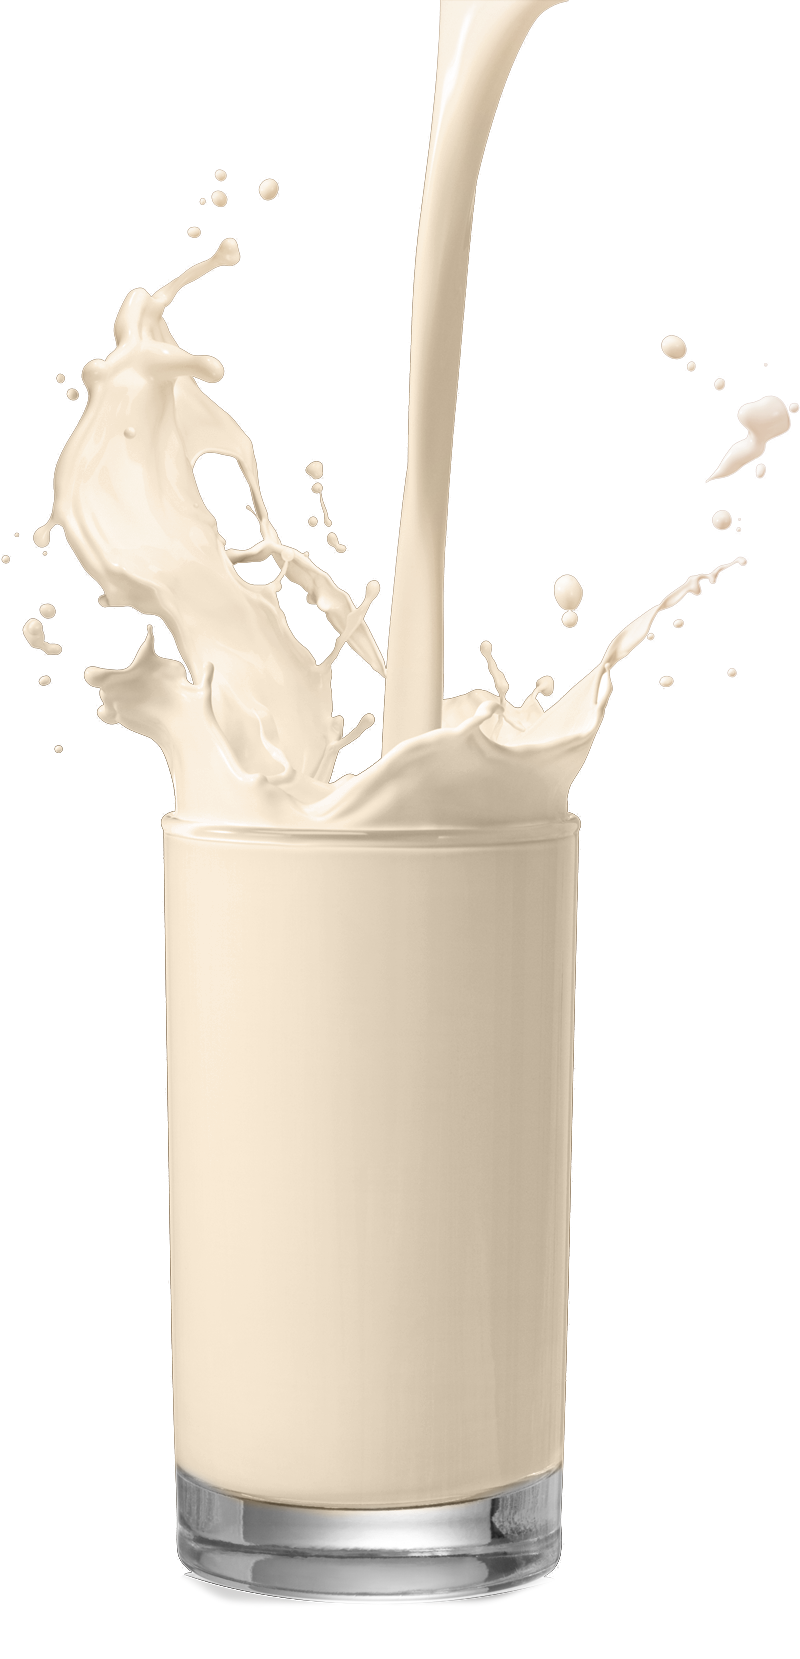 uploads milk milk PNG12723 3